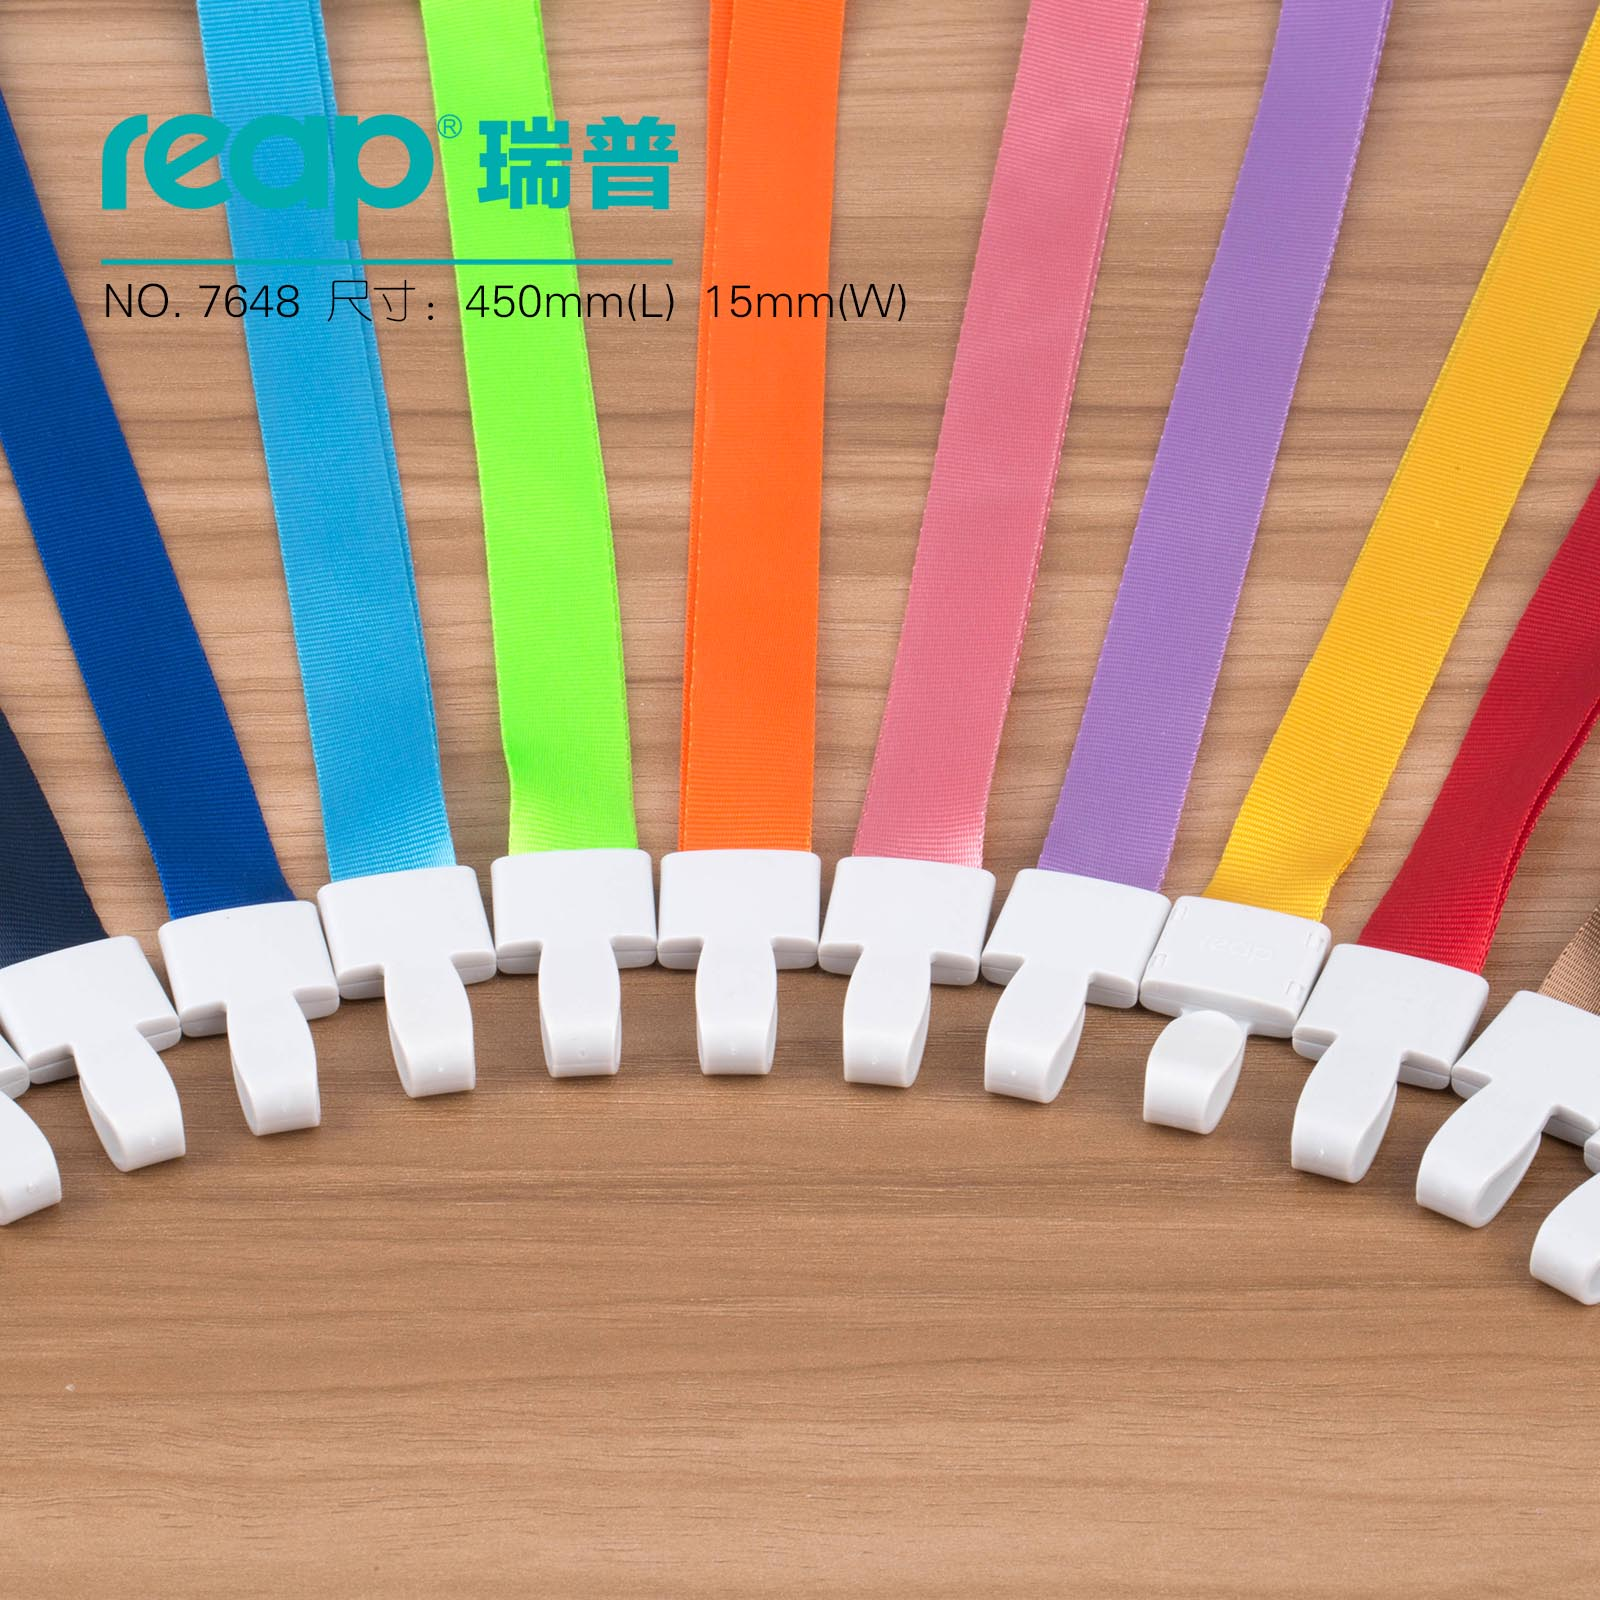 Rip integrated buckle sling badge badge 1.5 cm card sets sets of documents lanyard rope sling 7648